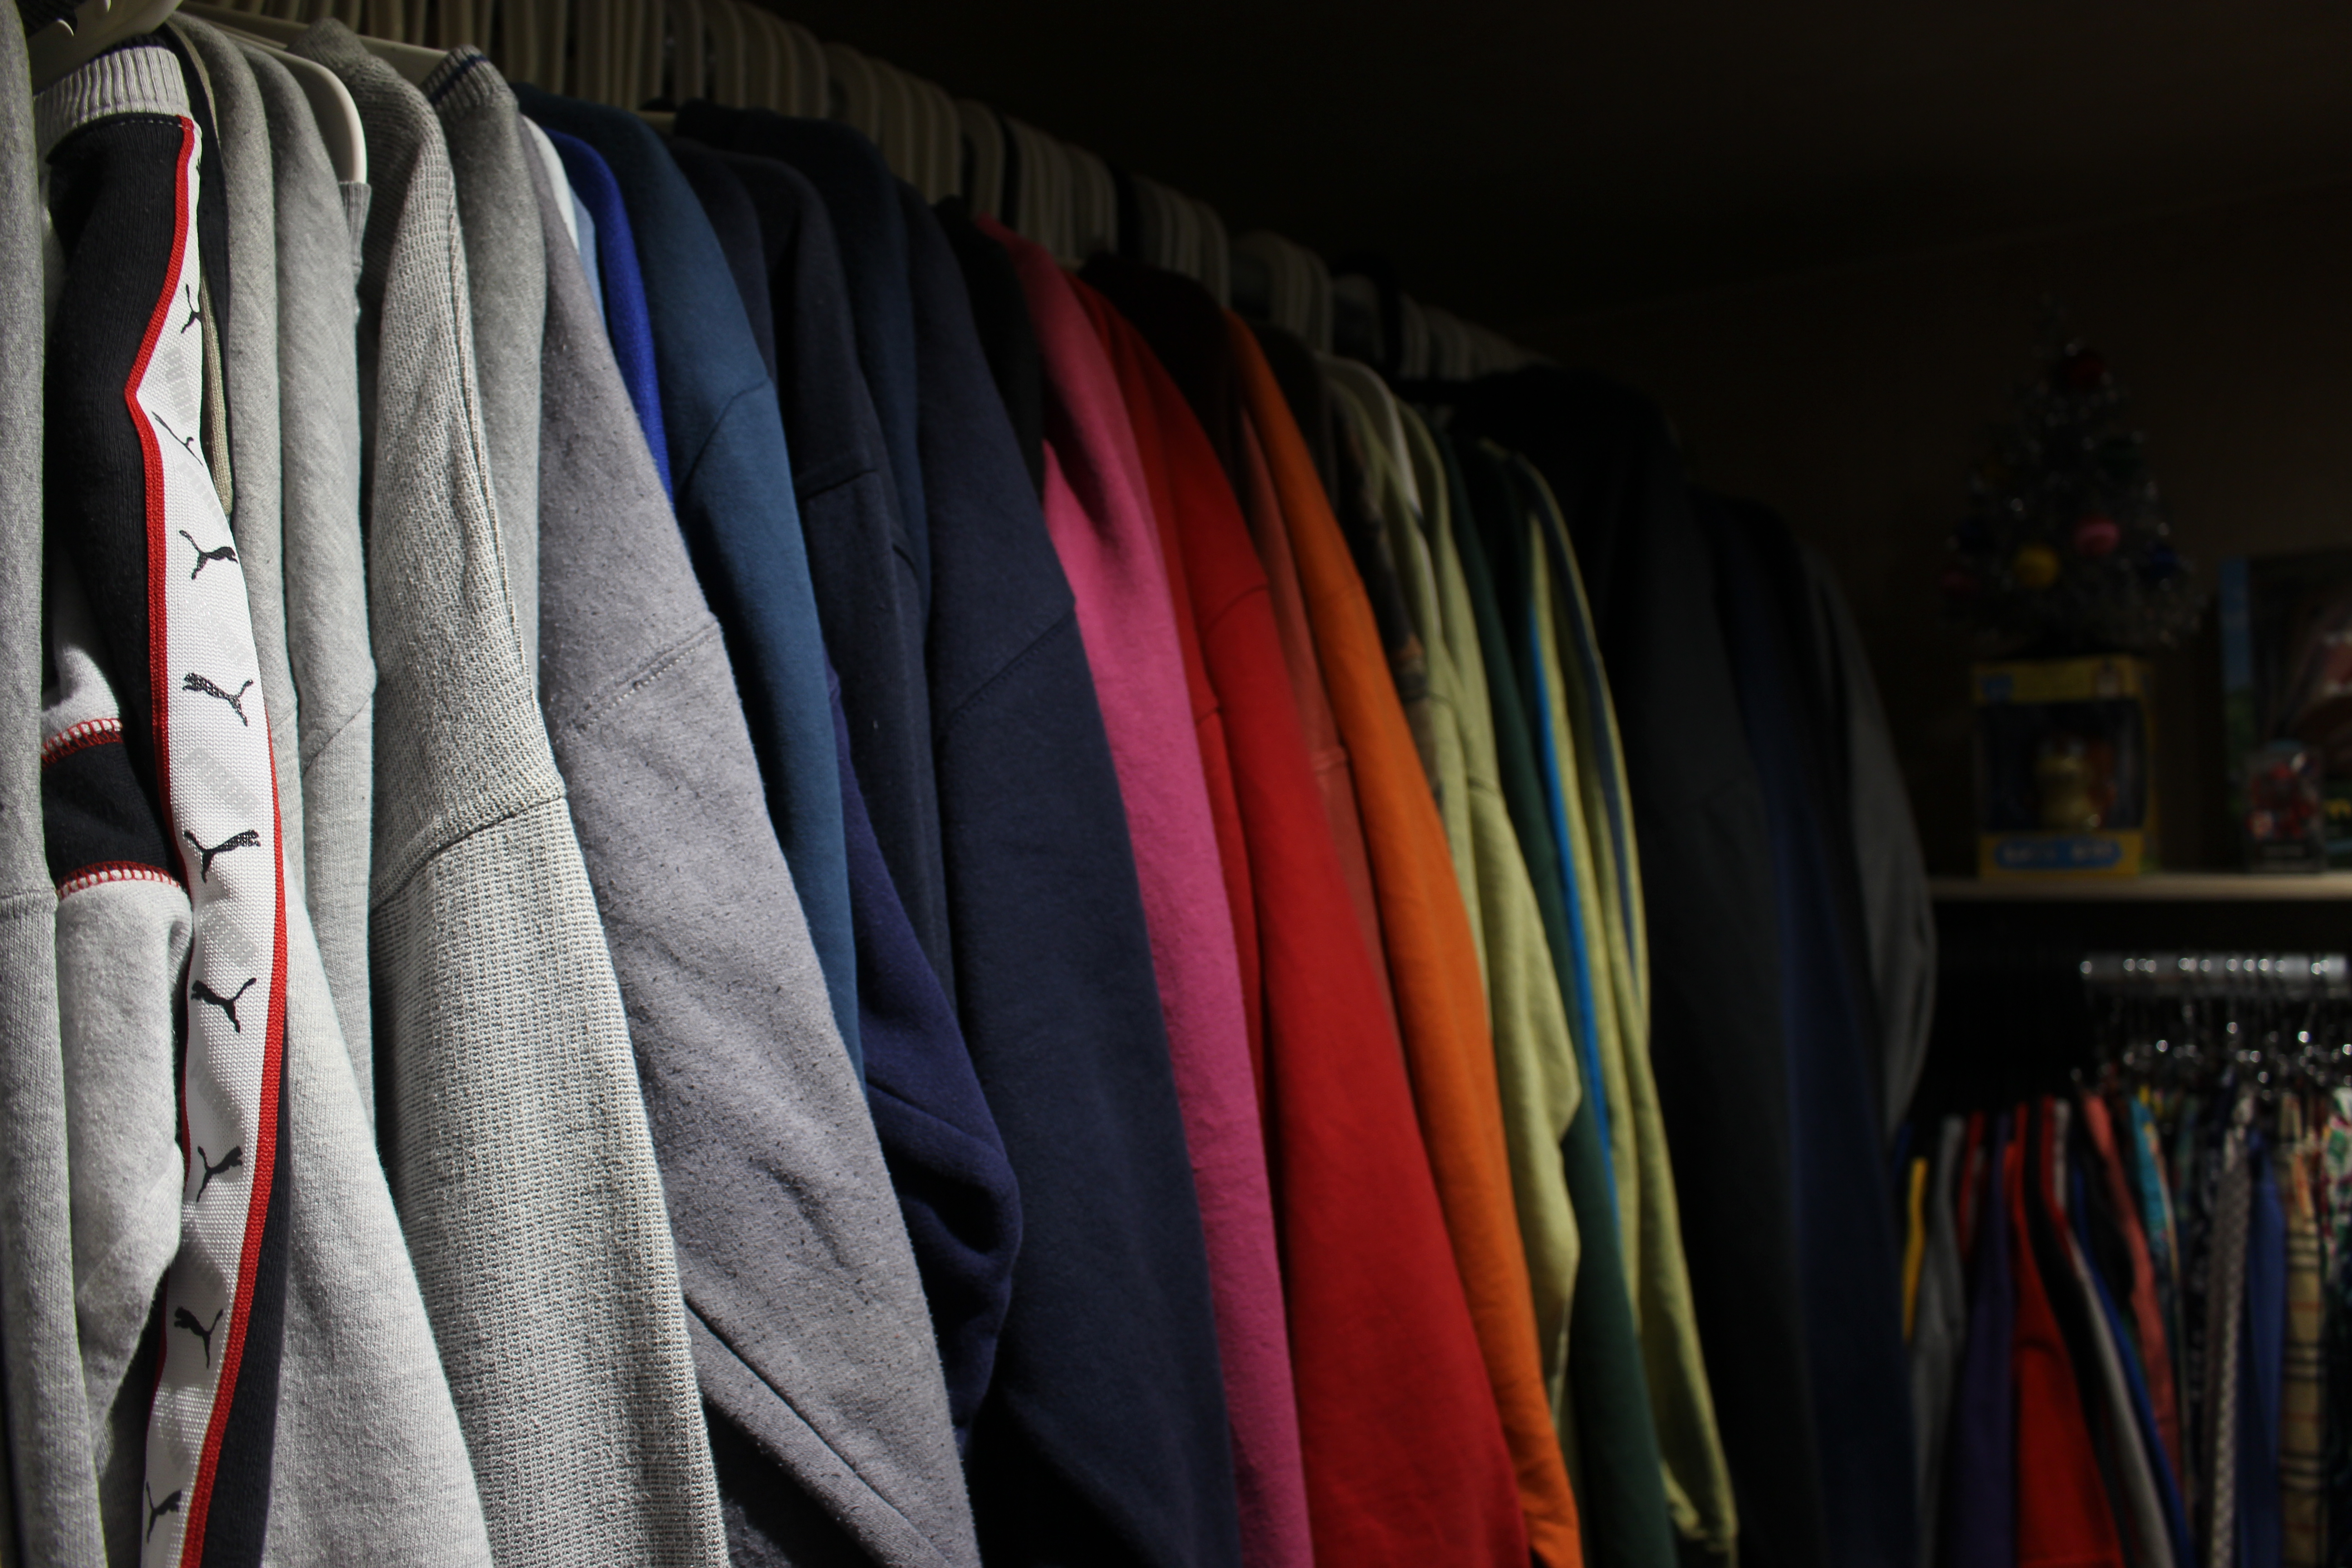 A clothing rail full of multi-coloured sweaters